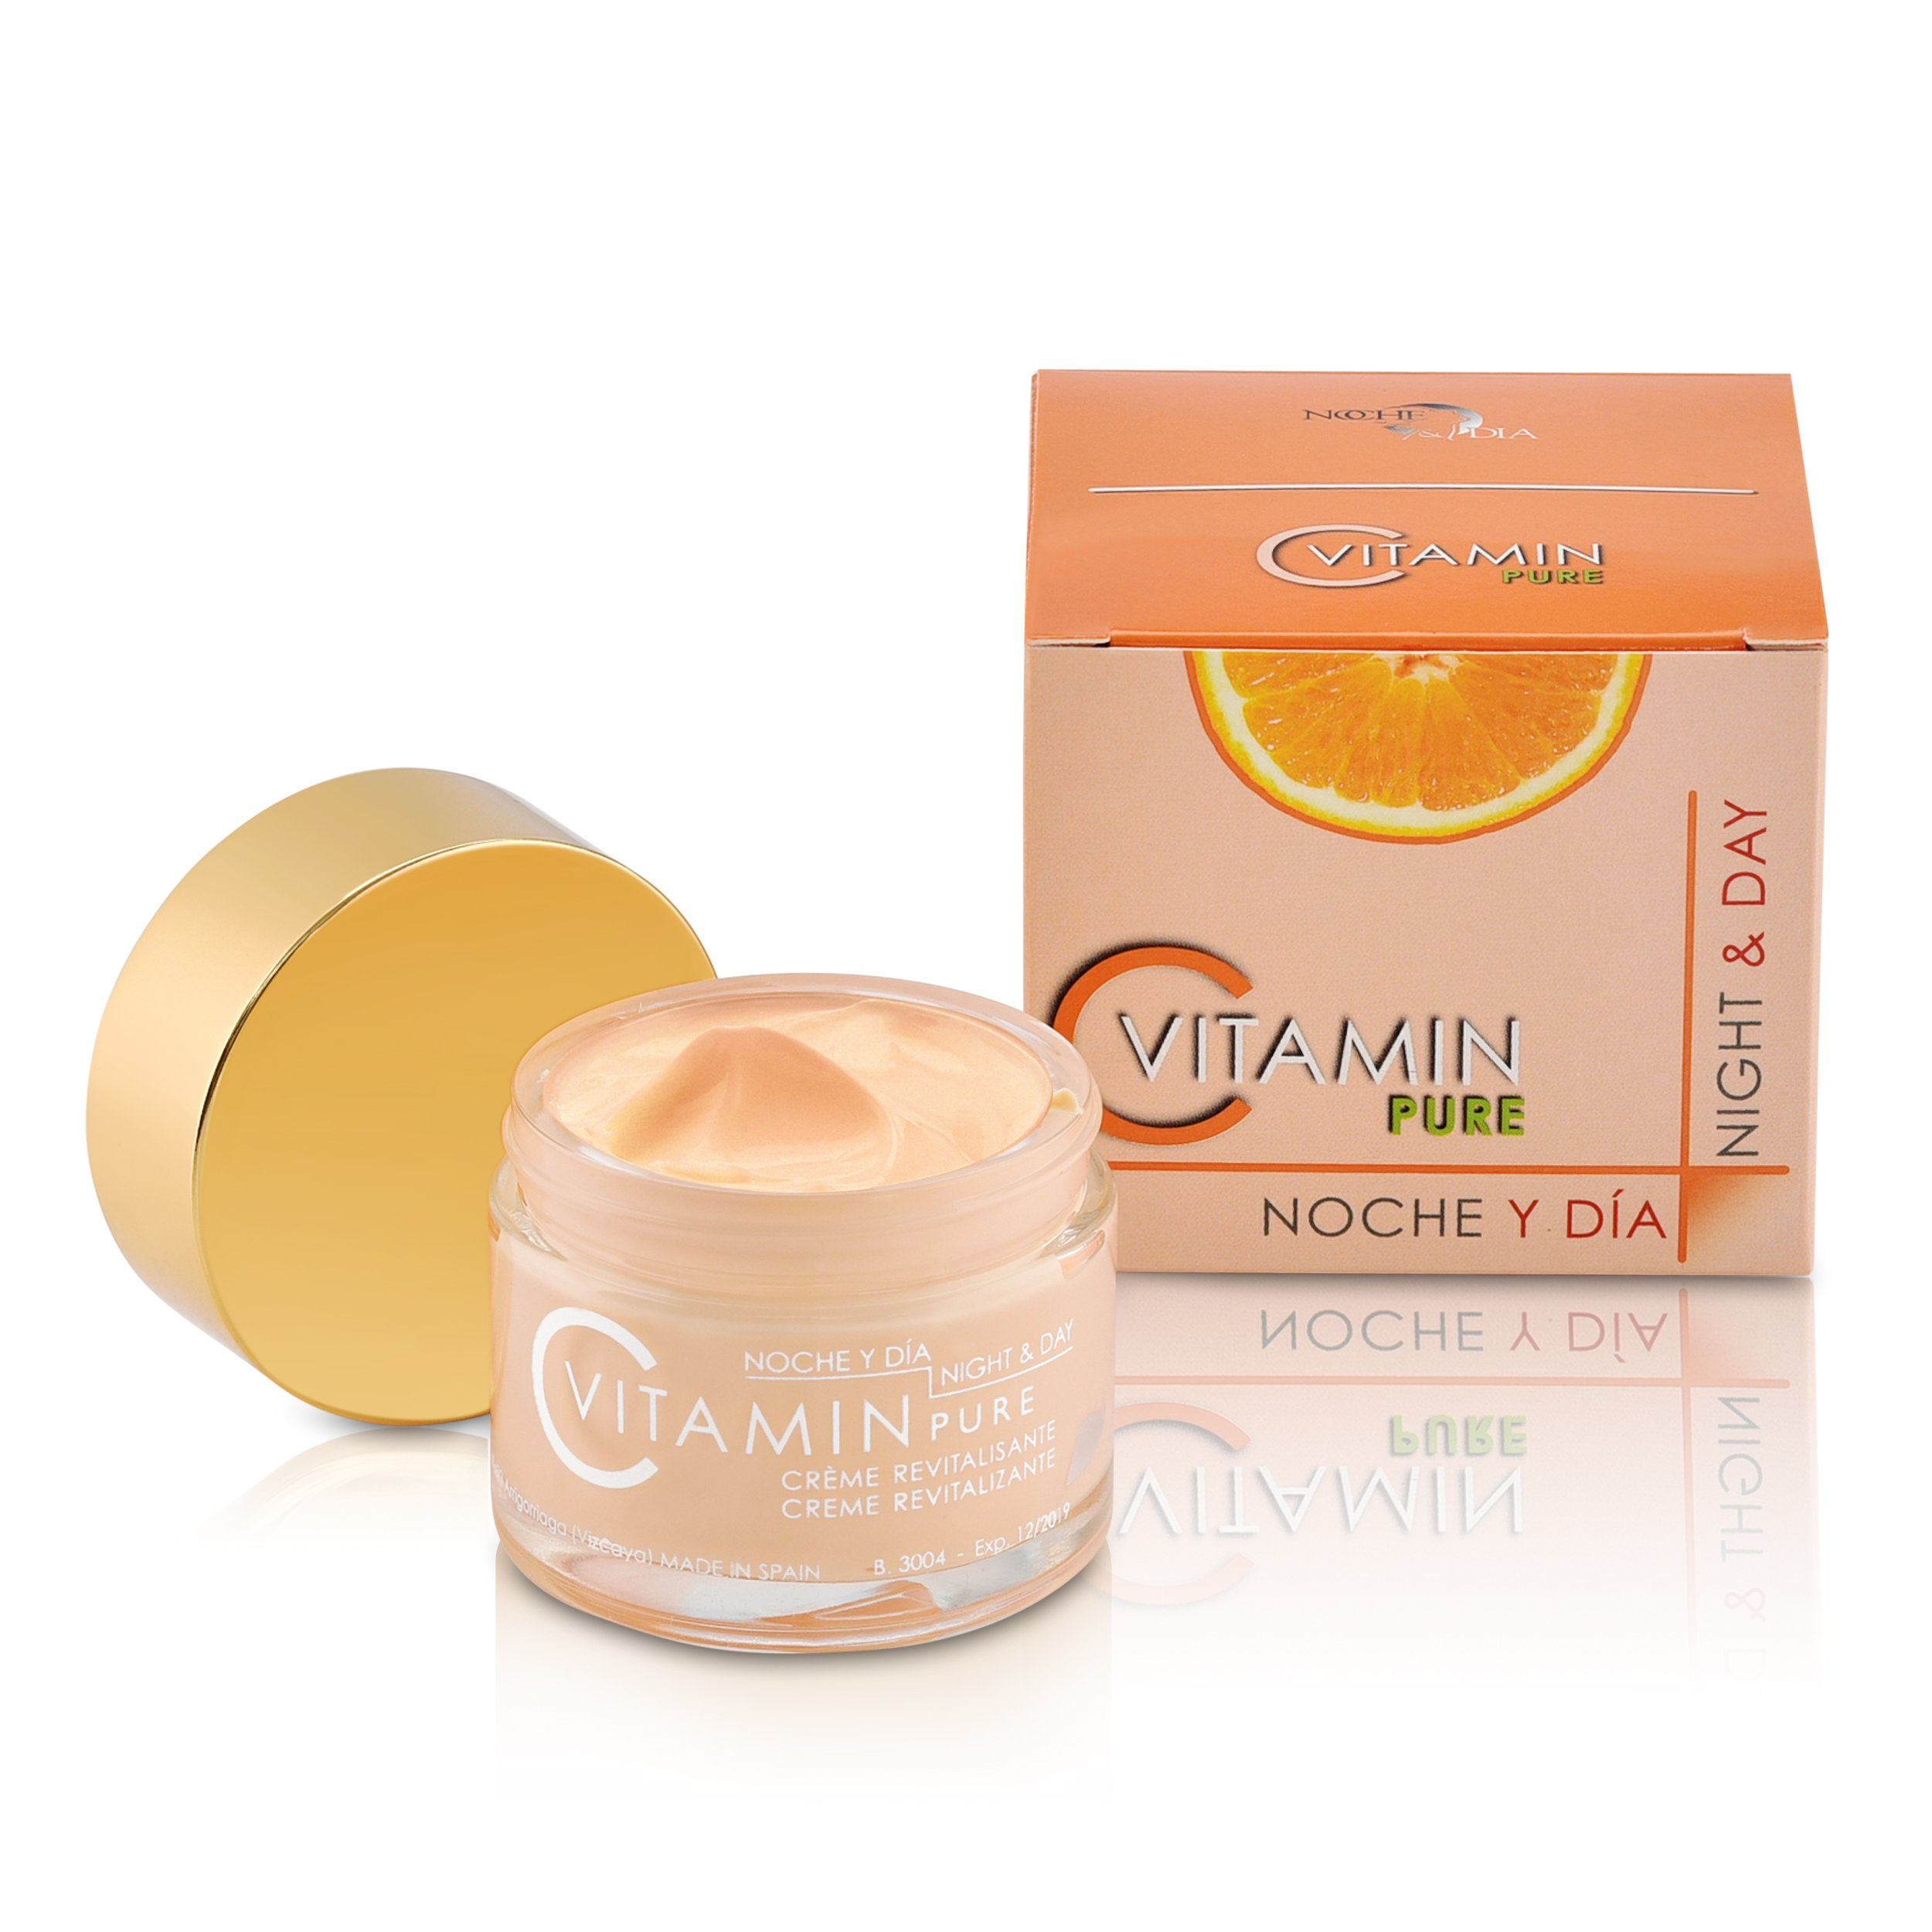 Noche y Dia Vitamina C Revitalizador Cream SPF 10 2.04 ounces